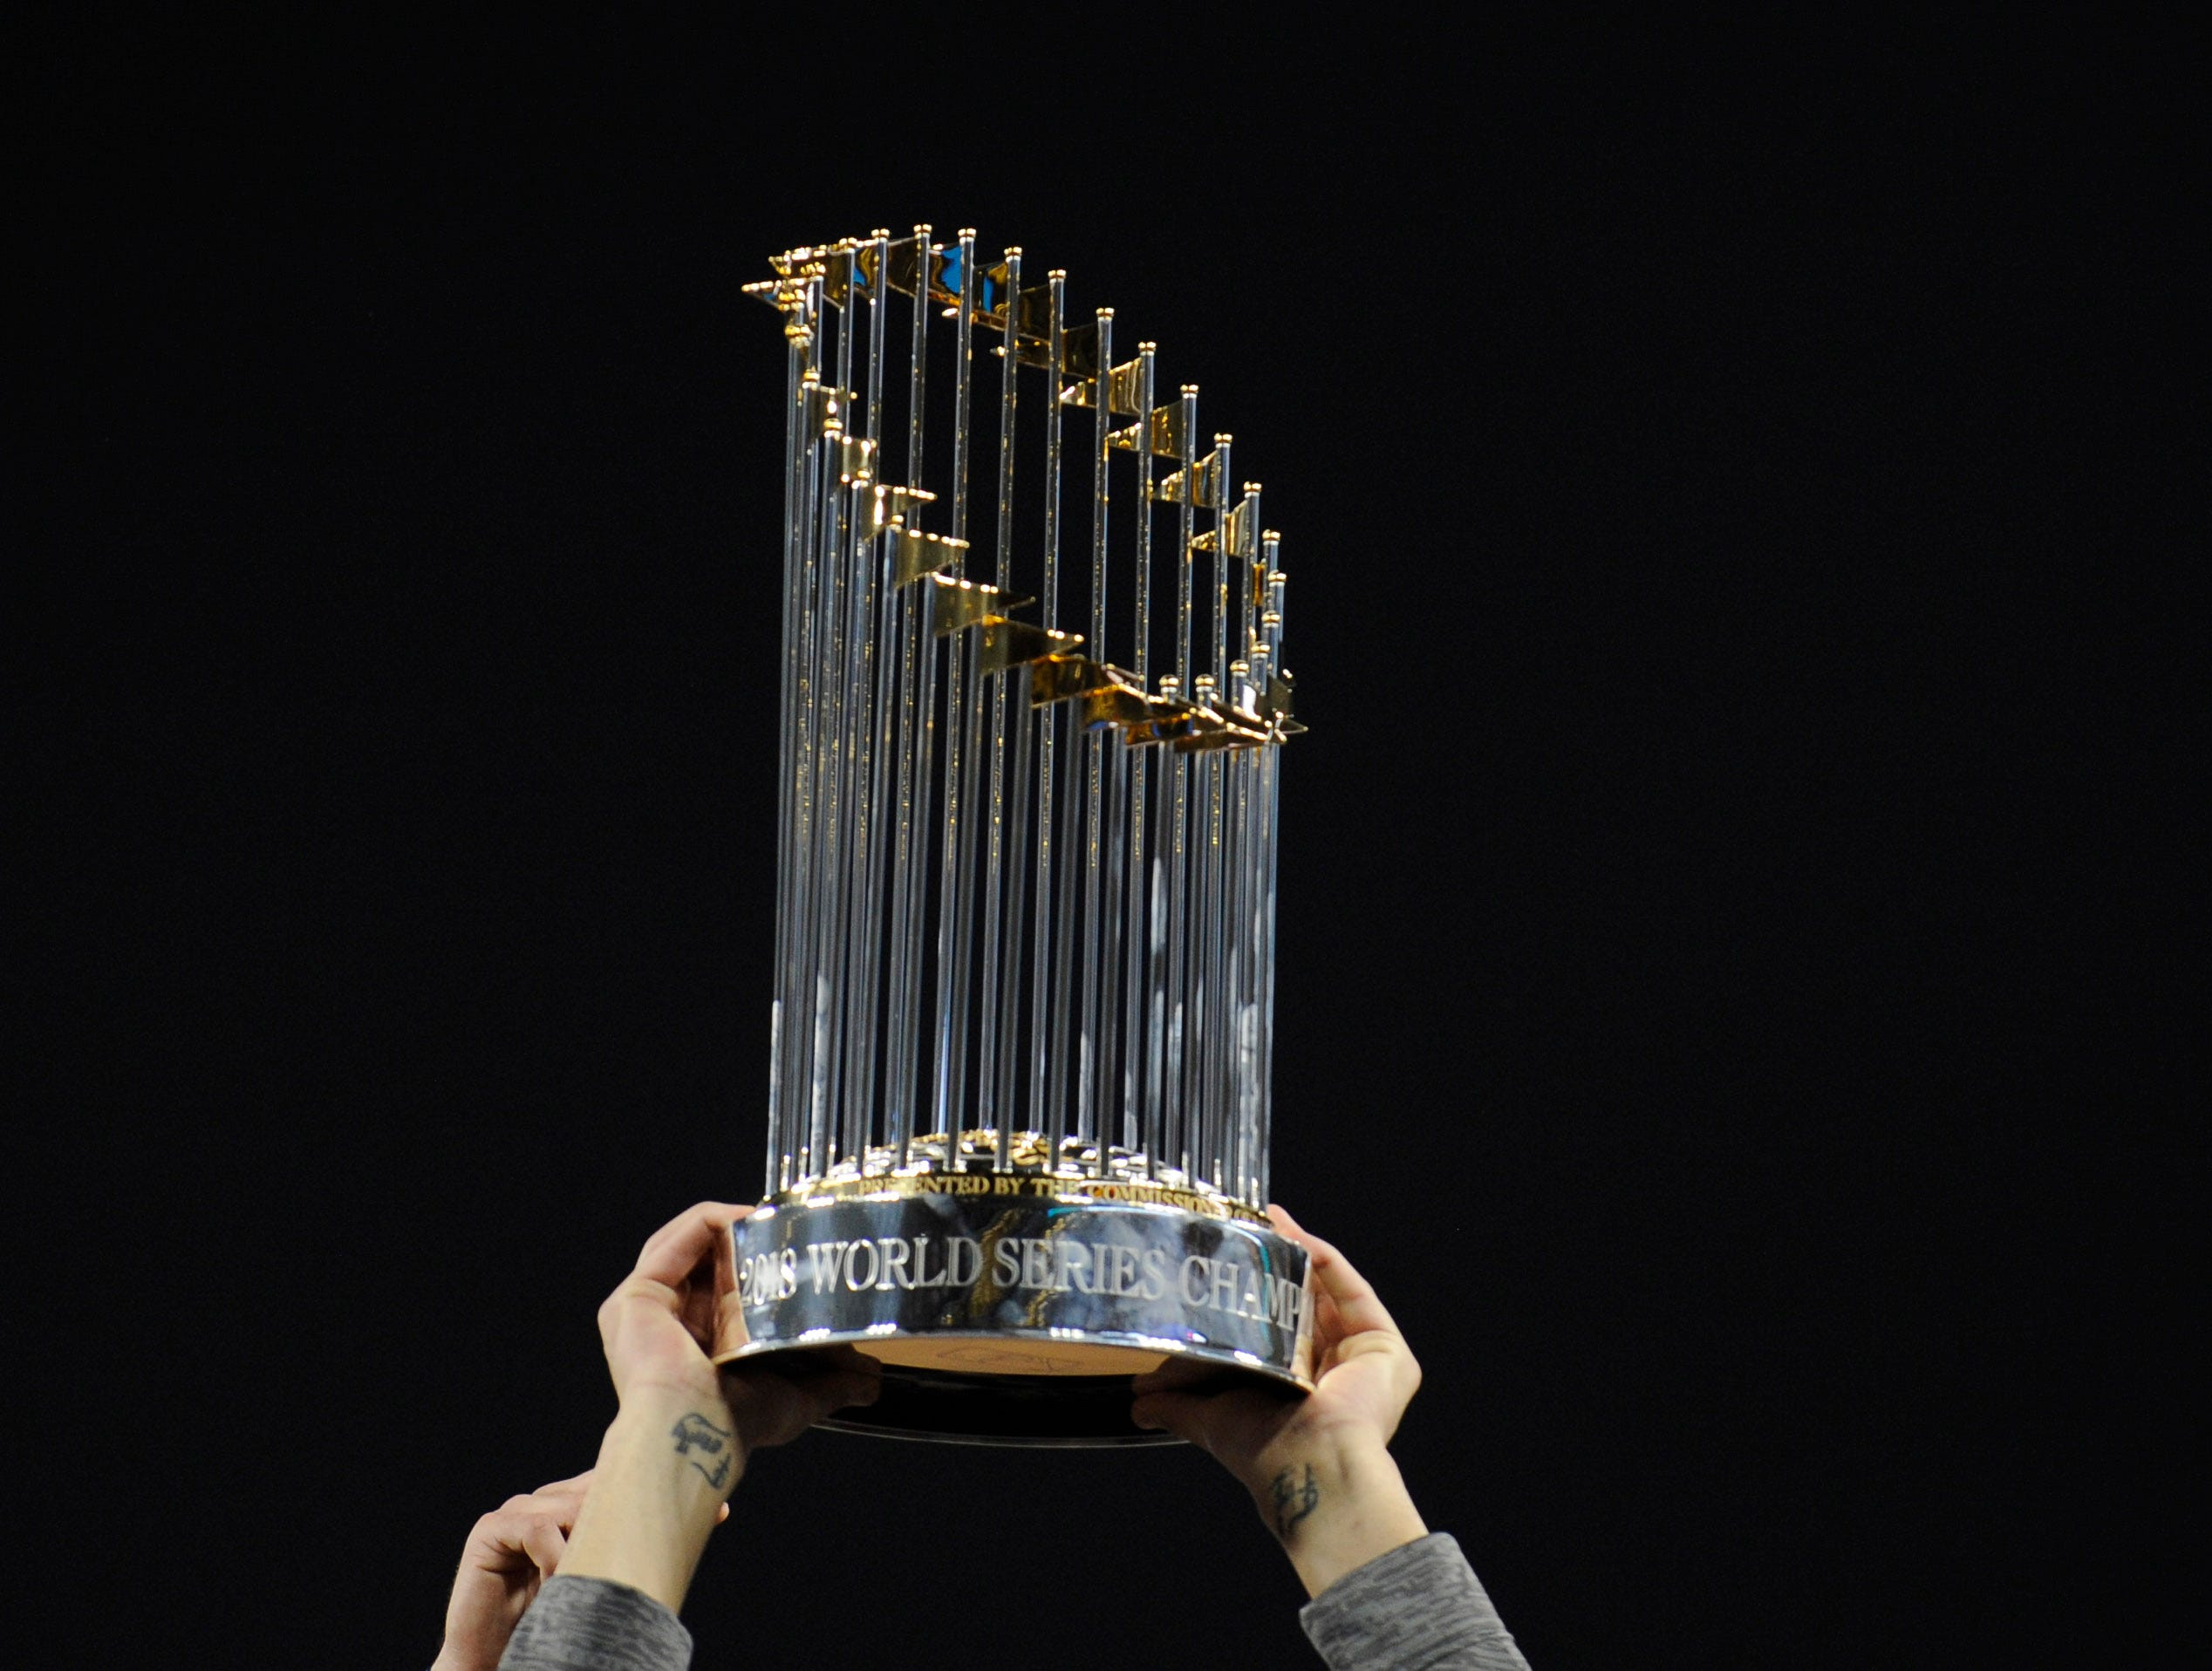 MLB playoff schedule: World Series dates and TV info